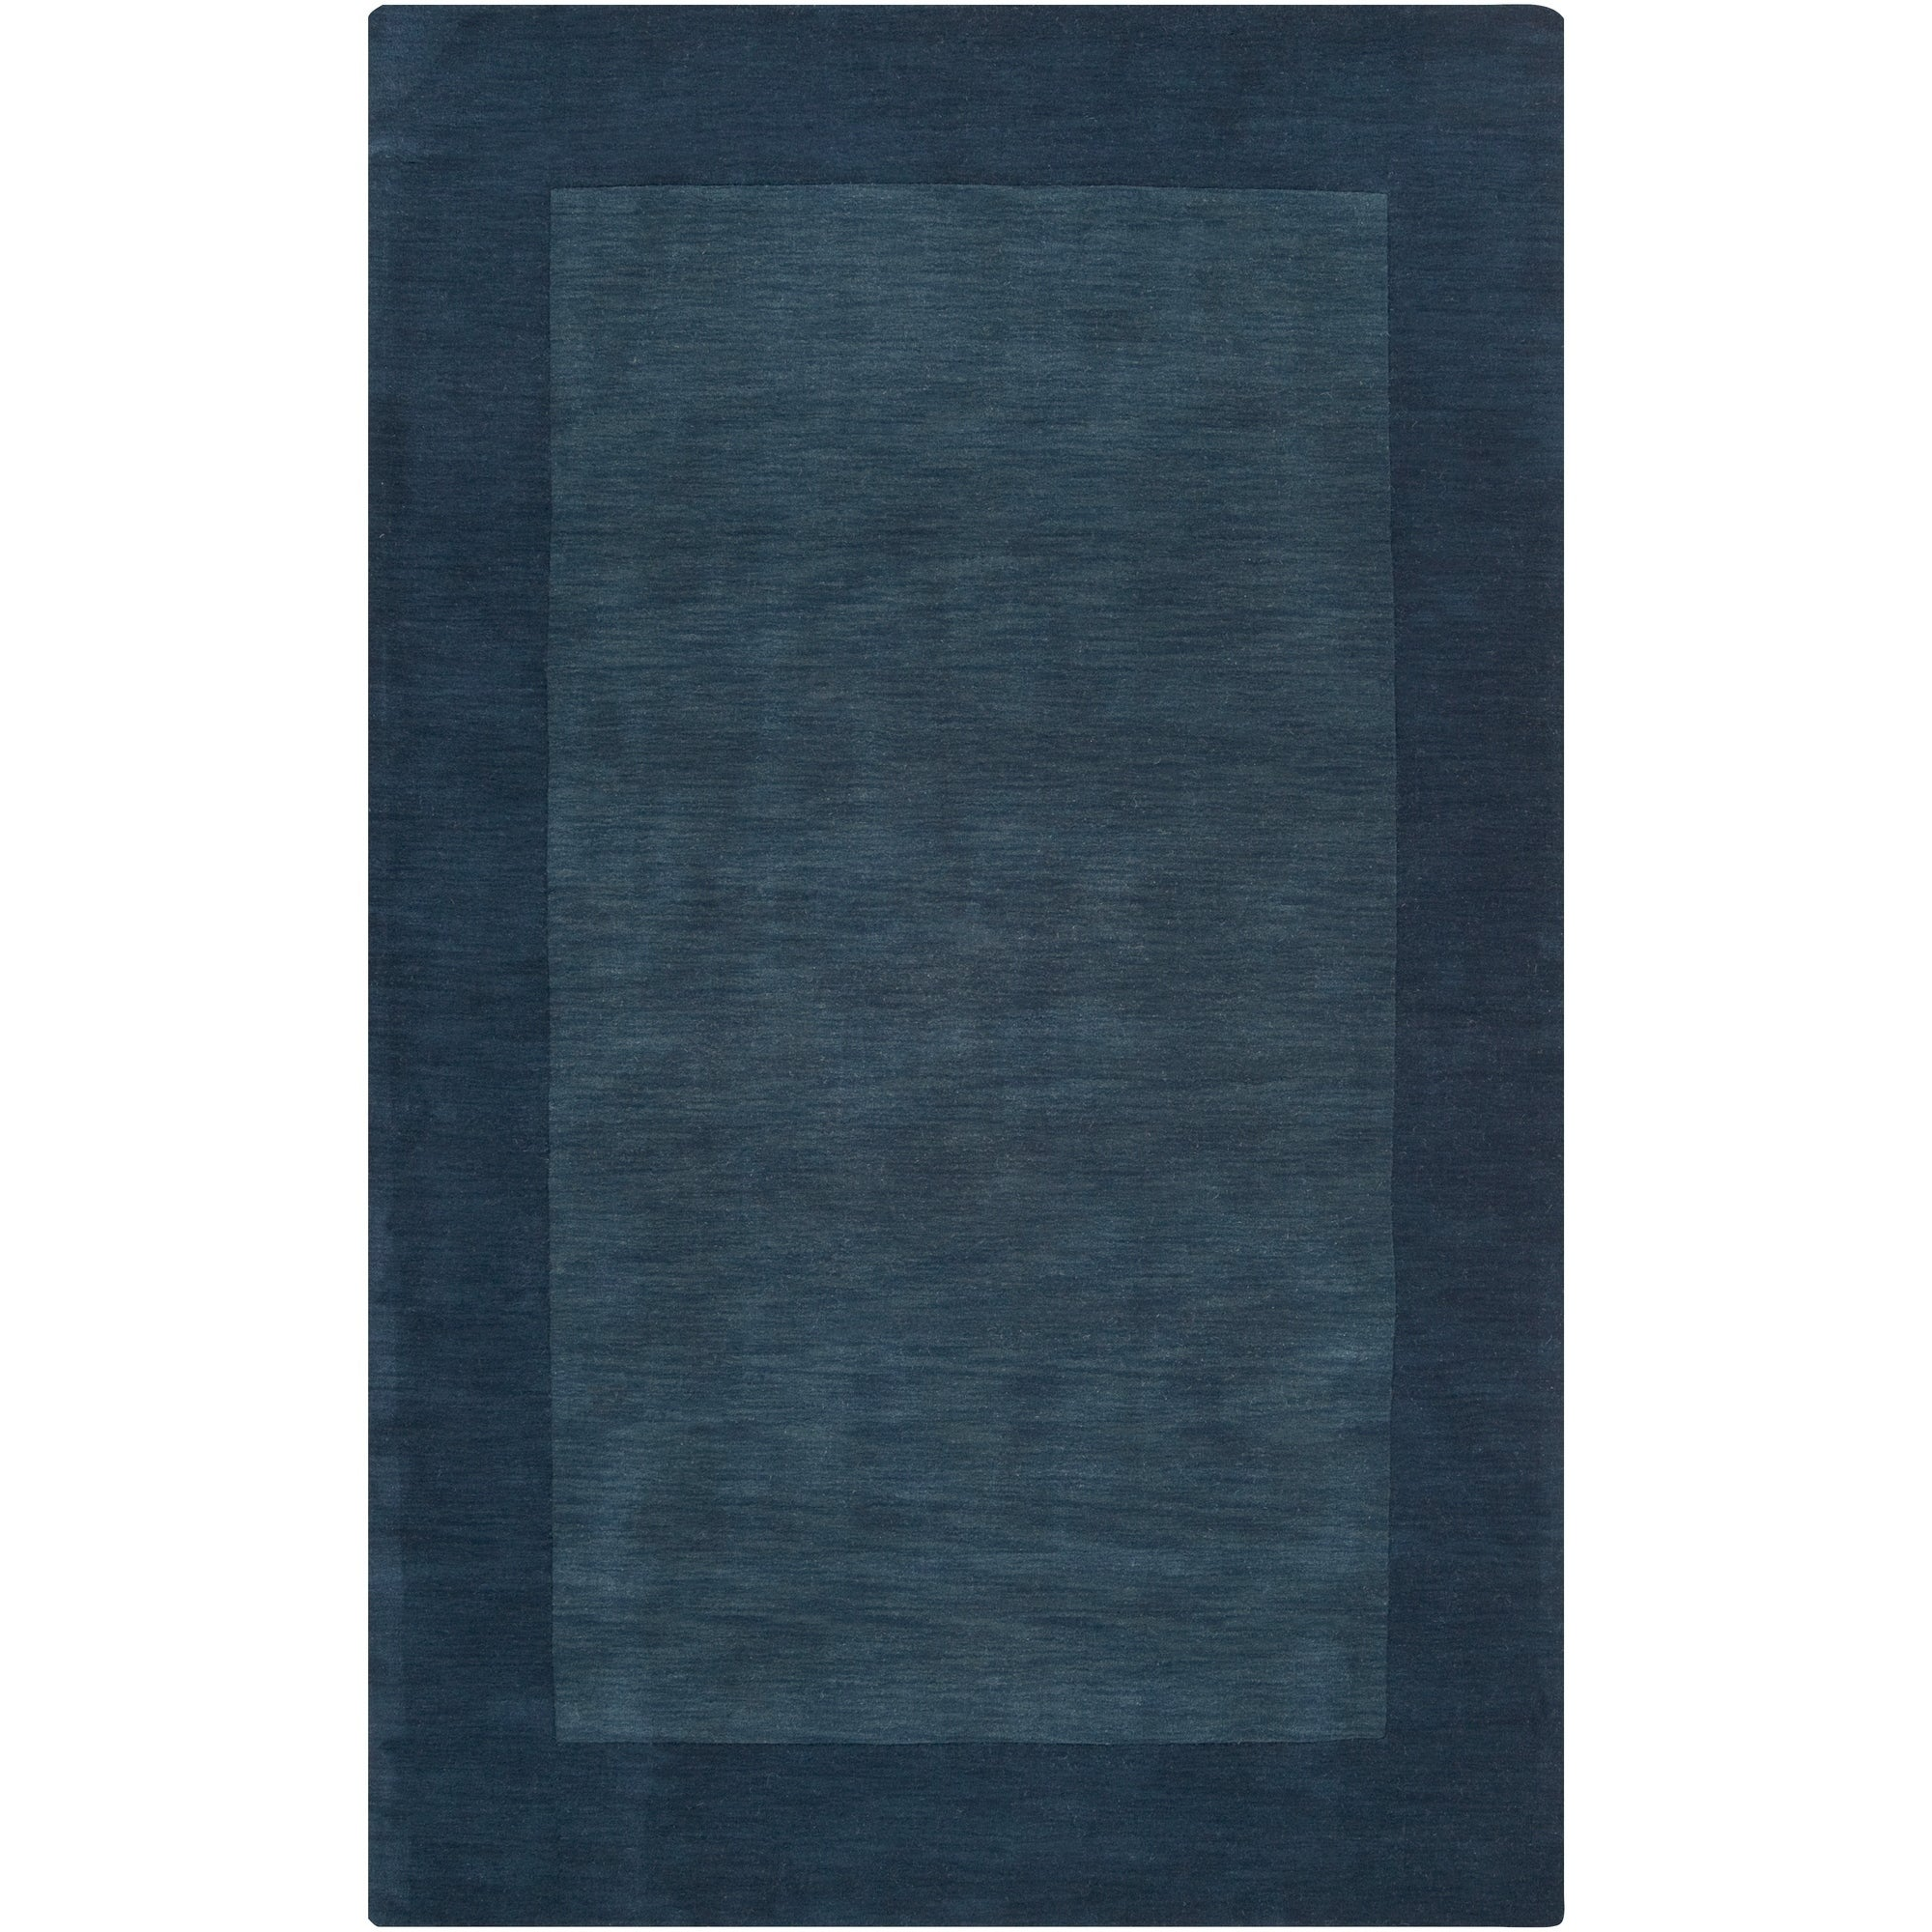 Hand Crafted Navy Blue Tone On Bordered Wool Area Rug 6 X 9 Surplus